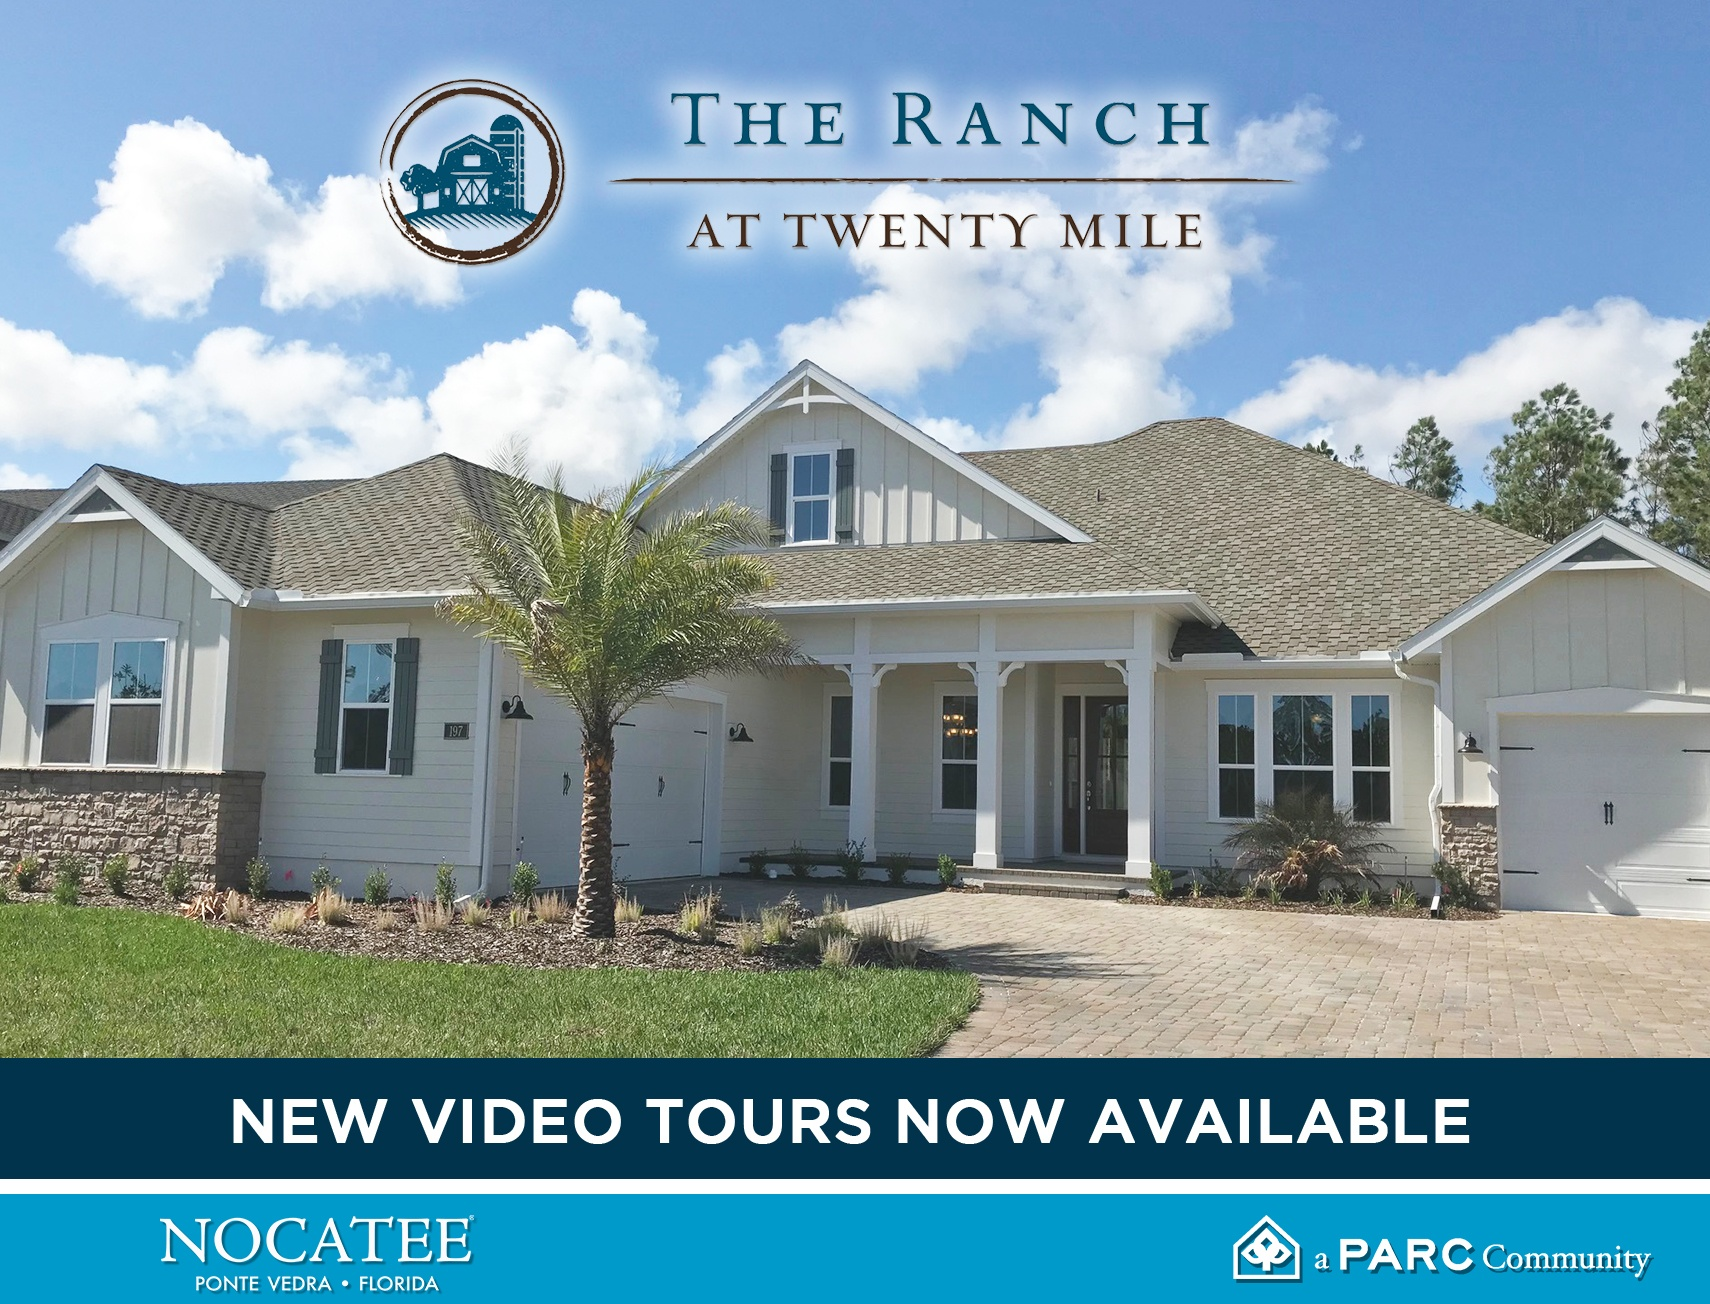 The Ranch at Twenty Mile Walk-through Wednesday Videos